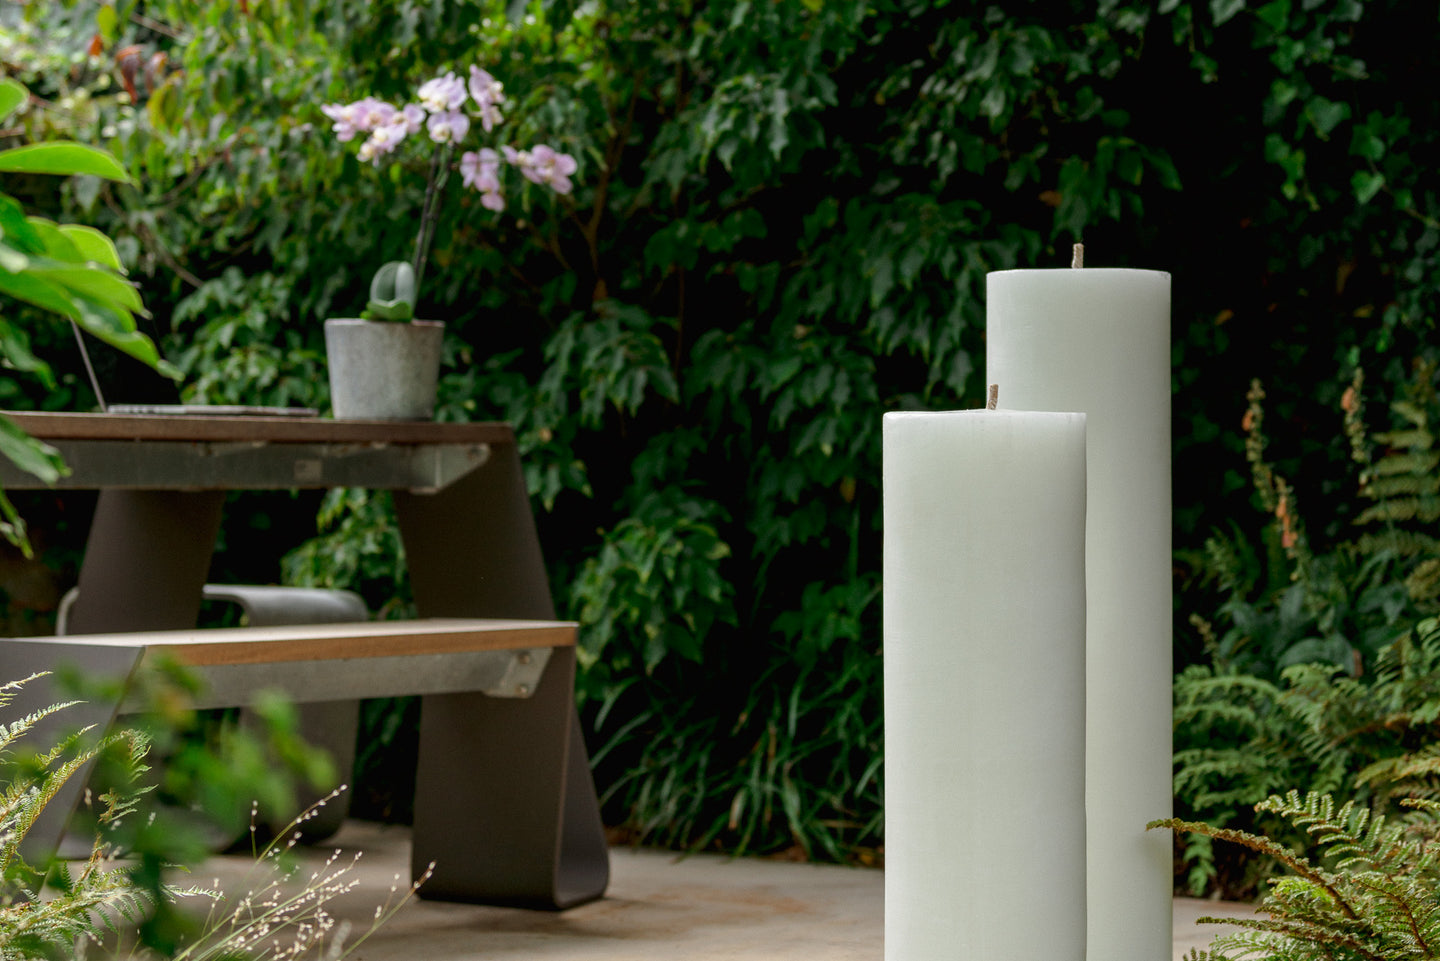 Two standing MAJO RUMI 1 metre tall, white outdoor garden pillar candles, not lit, in garden setting with garden bench